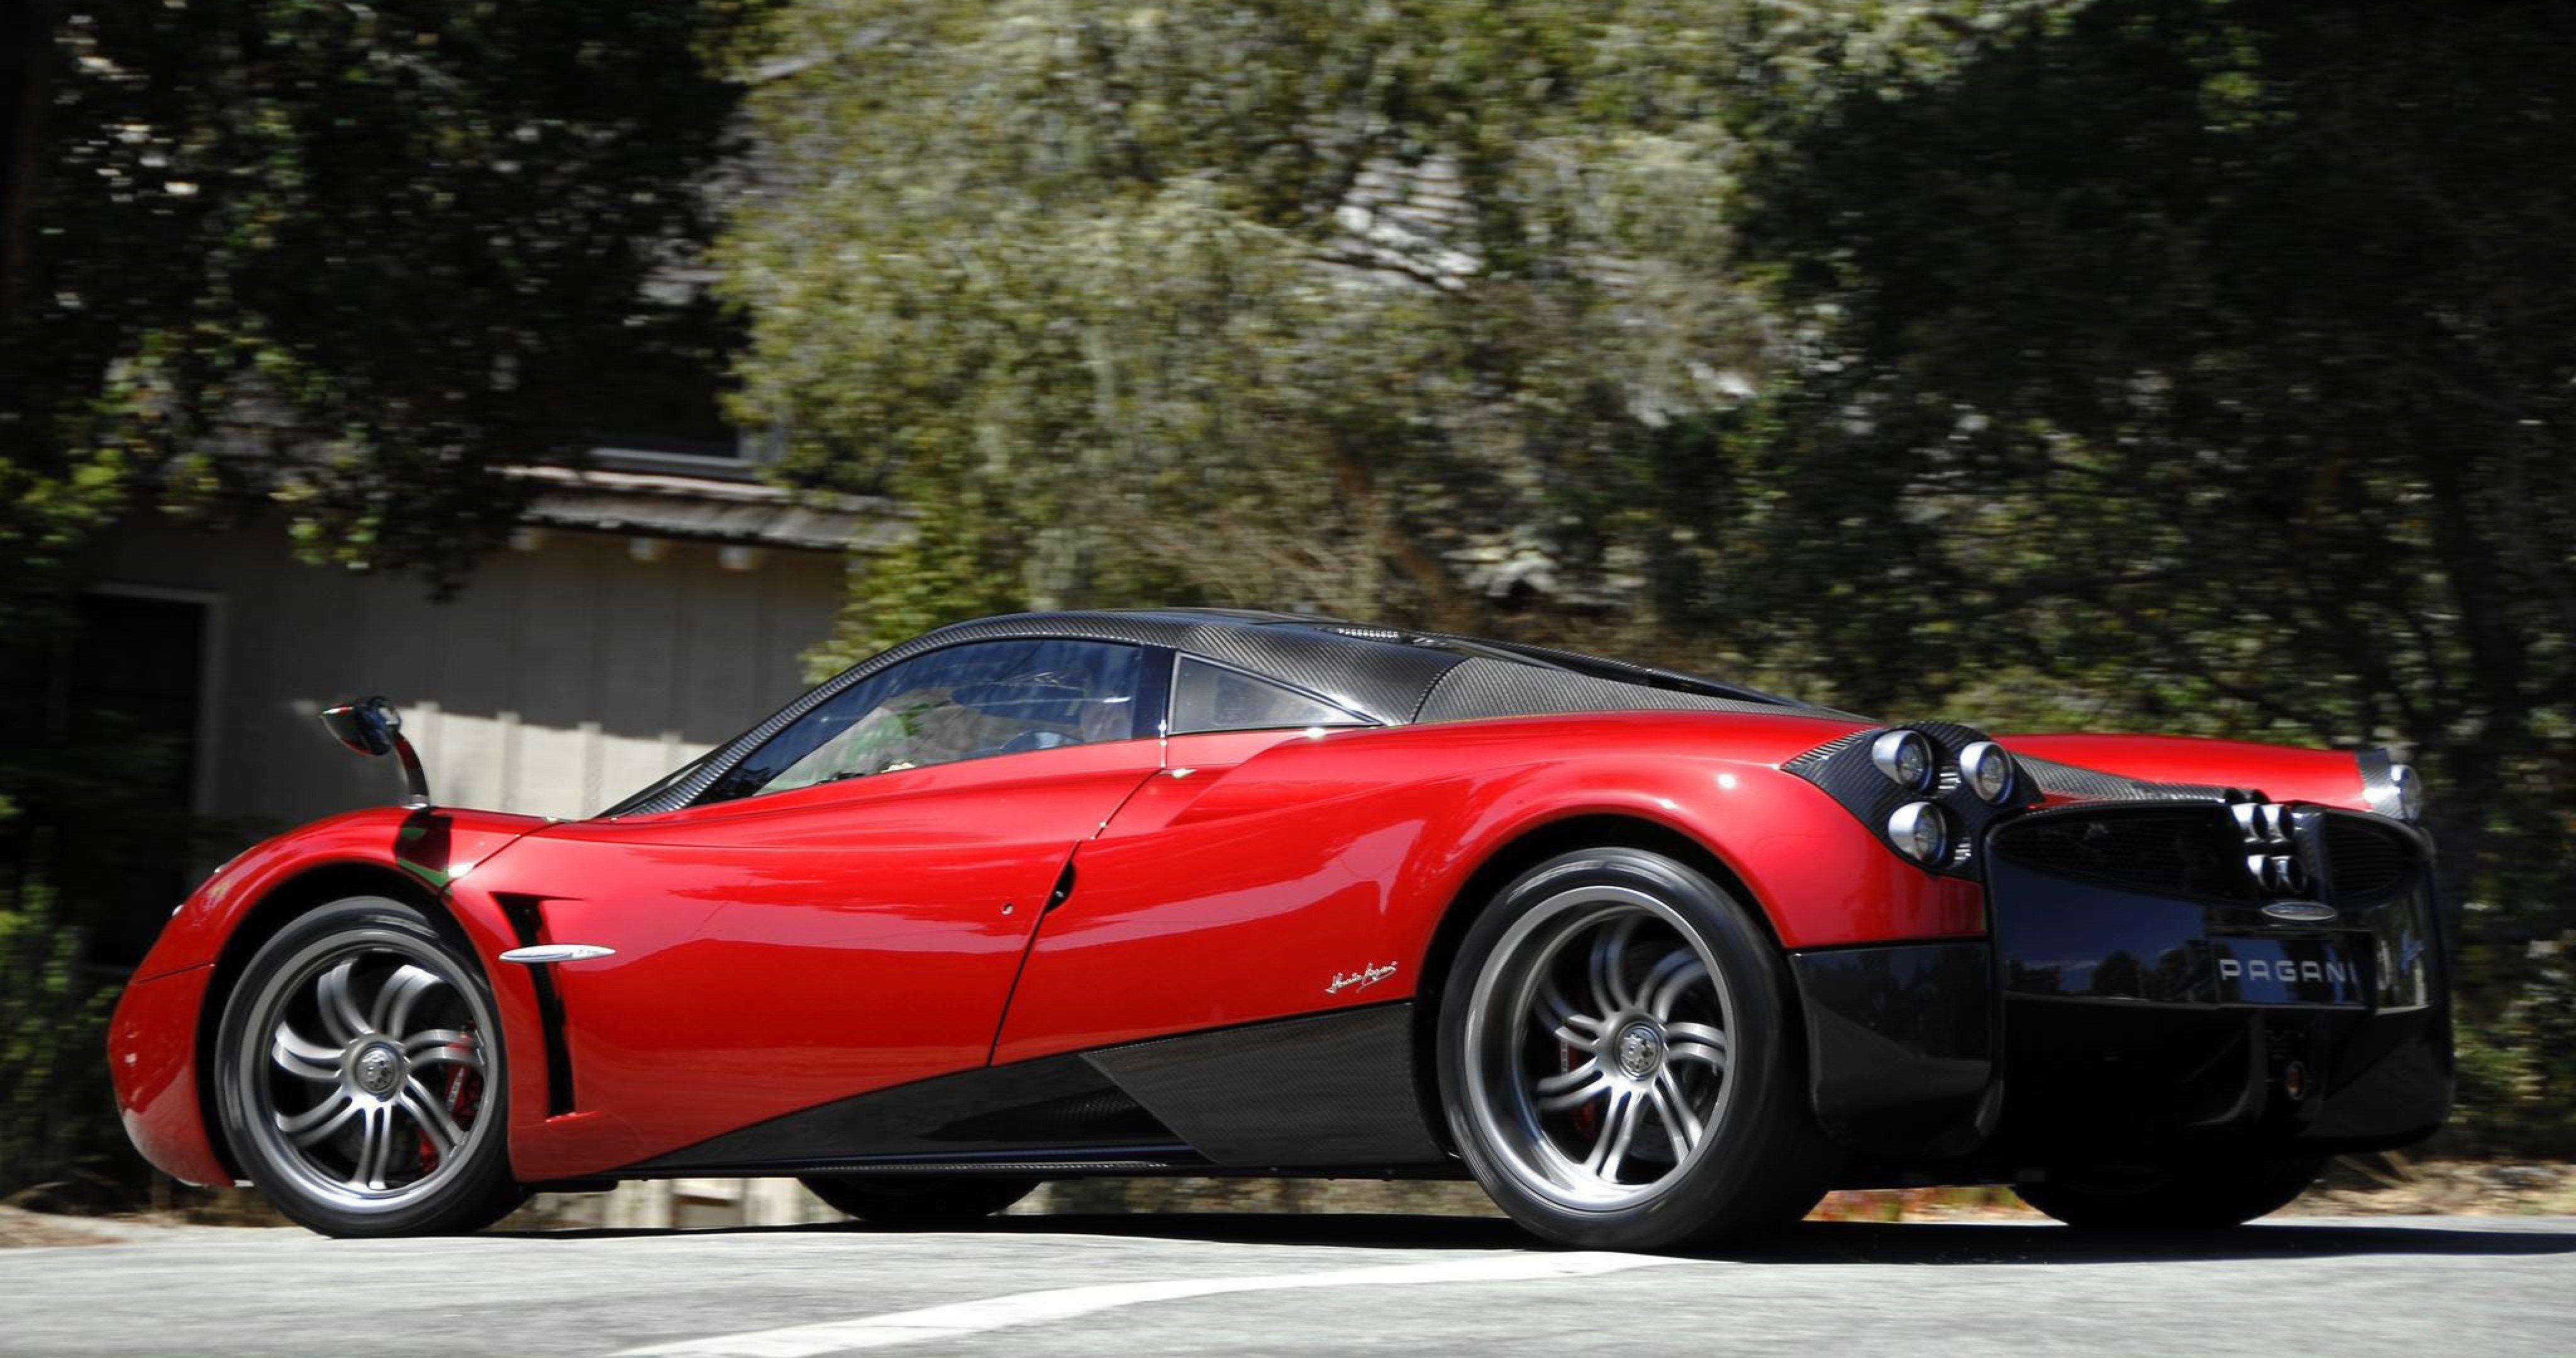 pagani huayra us wallpapers 4k ultra hd wallpapers » High quality walls